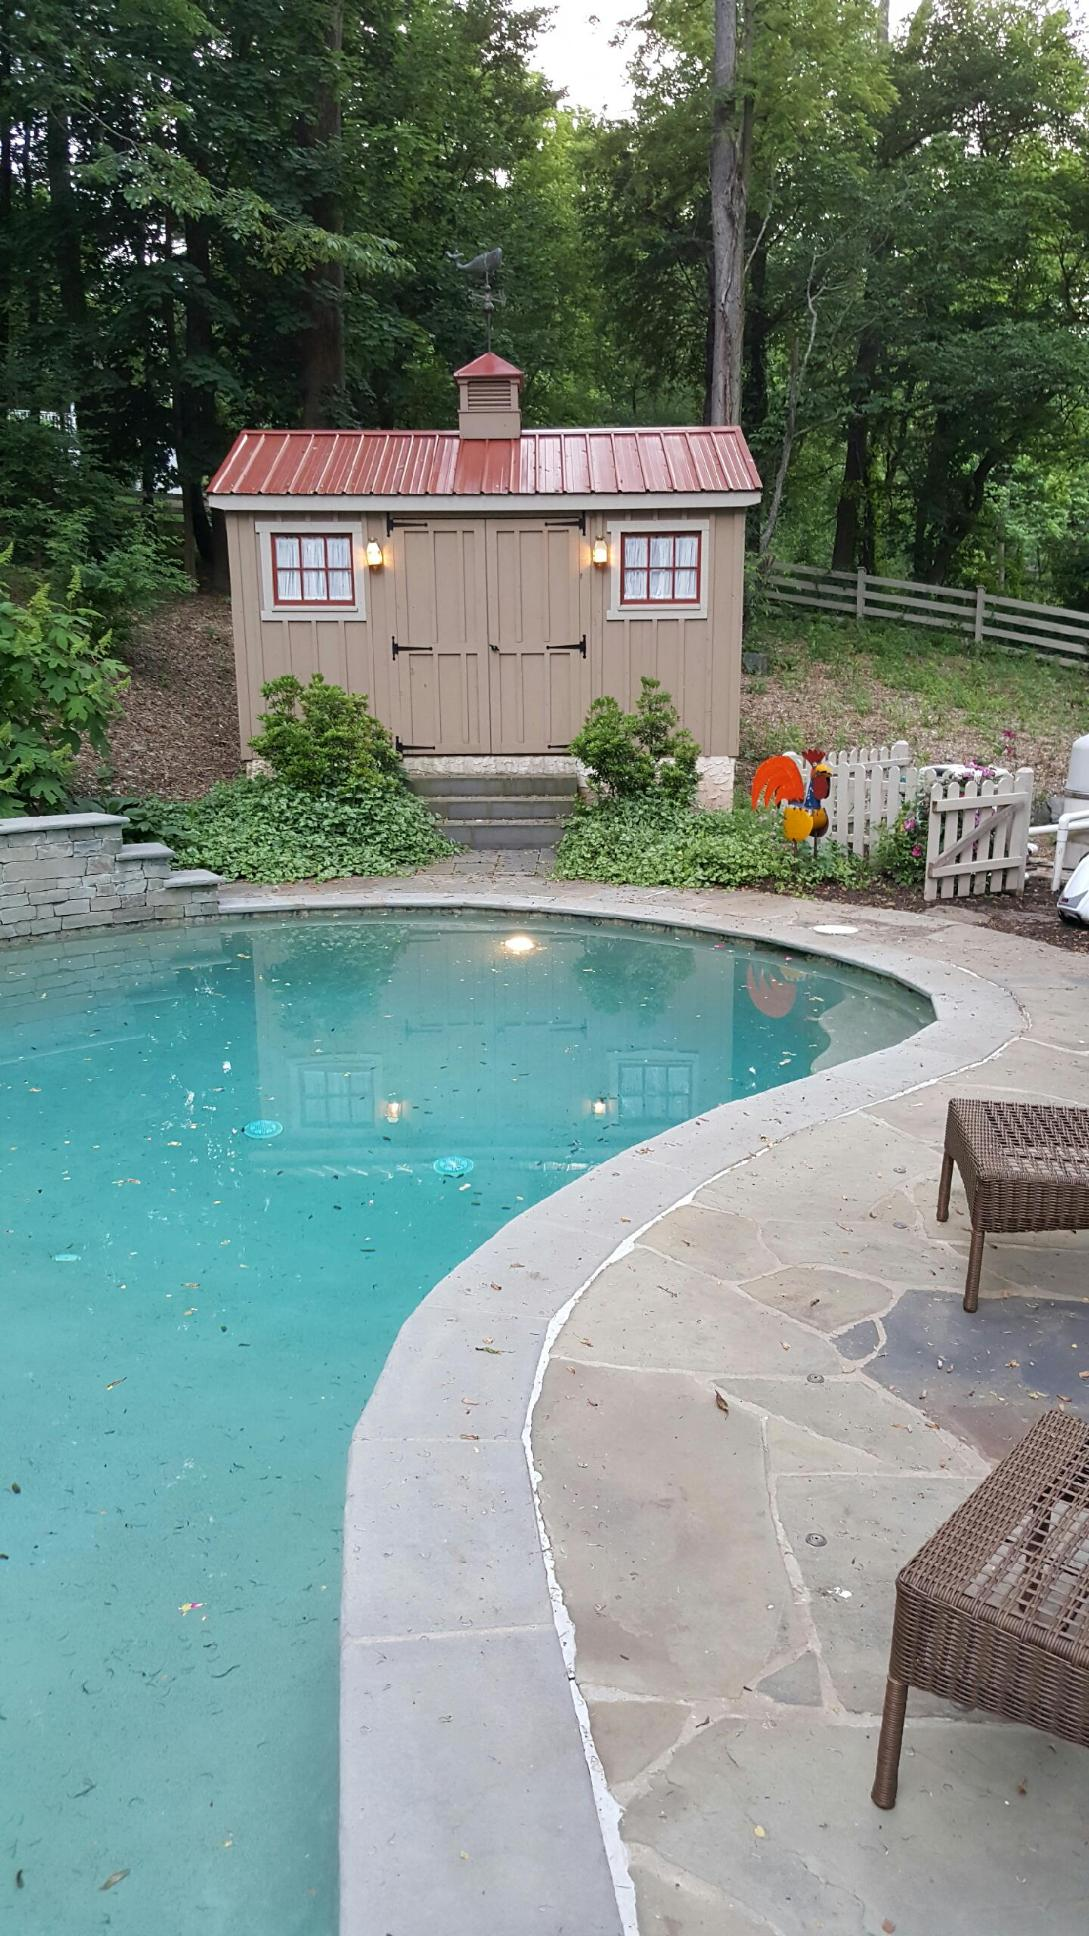 house wiring outlets pool and hot tub wiring collegeville and pottstown pa basic house wiring outlets